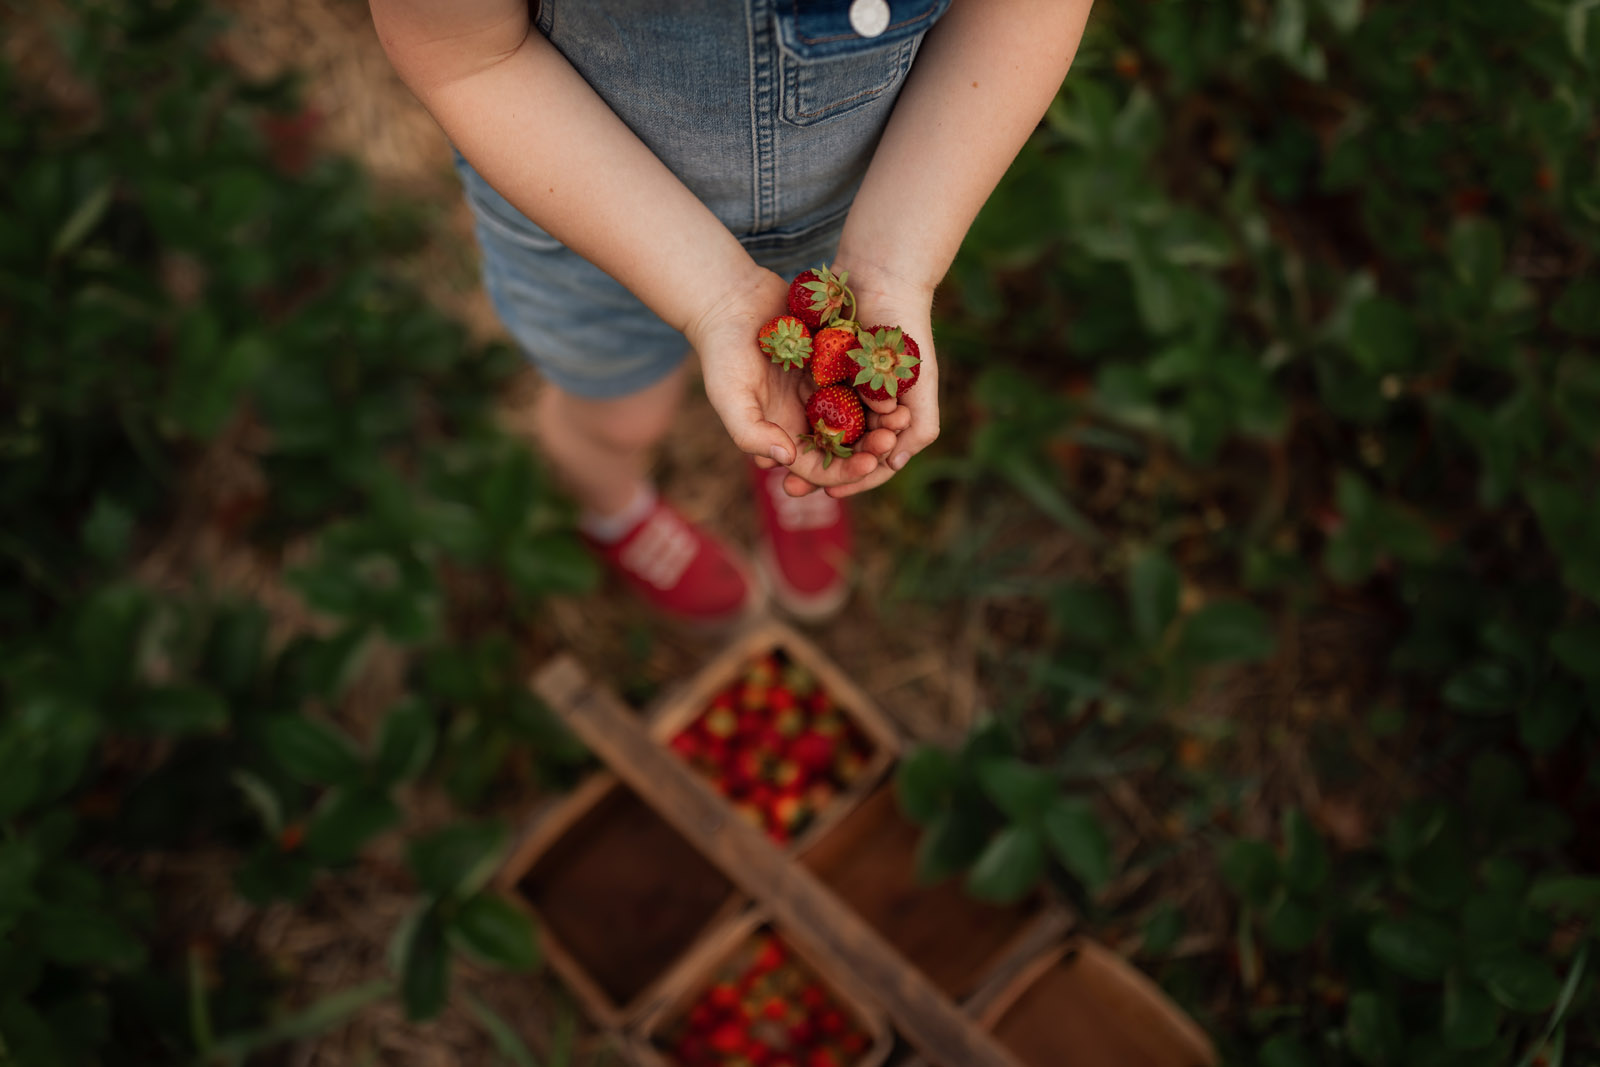 color theory child hands holding strawberries meg loeks